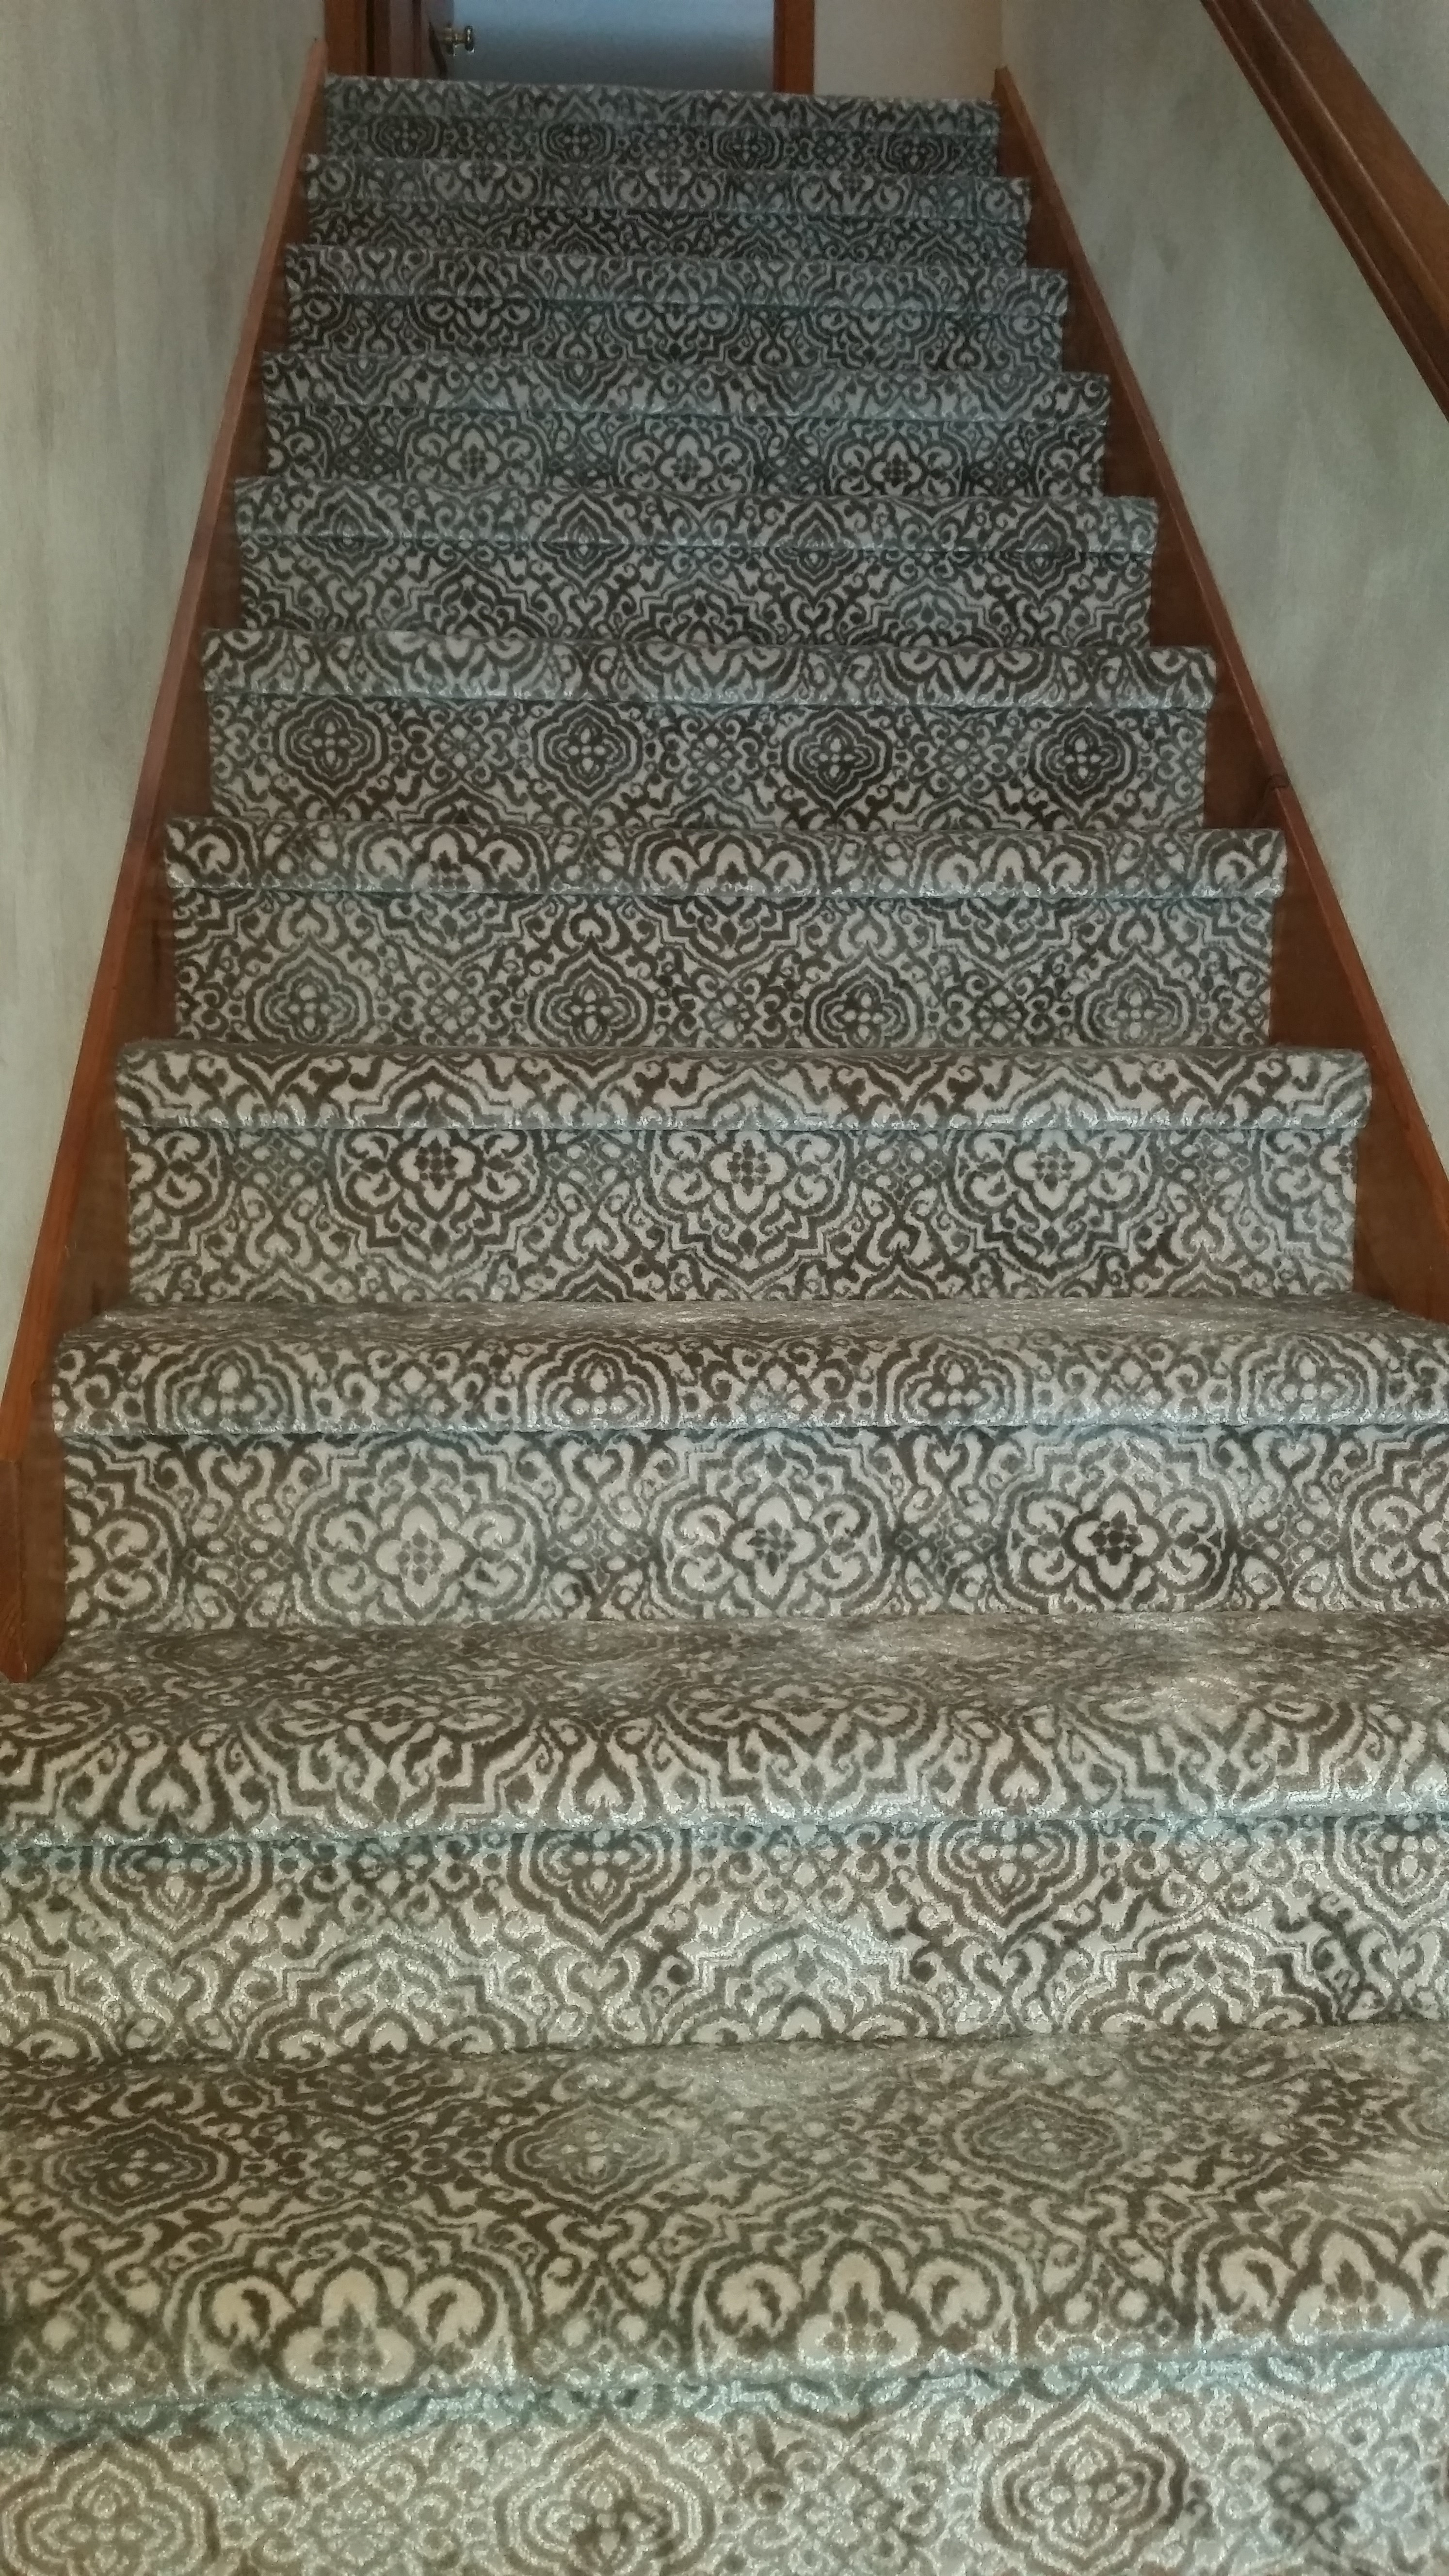 Total floor covering coupons near me in appleton 8coupons for Floor covering near me